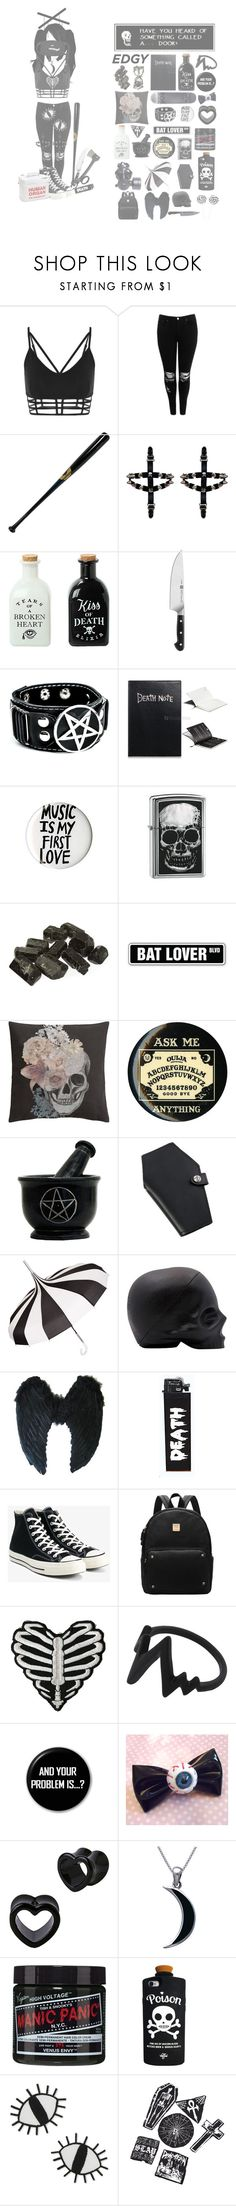 """puppet of a killer queen"" by cocopuffkitty ❤ liked on Polyvore featuring Boohoo, Hot Topic, Zwilling J.A. Henckels, Zippo, H&M, Hourglass Cosmetics, GAS Jeans, GET LOST, Converse and Carolina Glamour Collection"